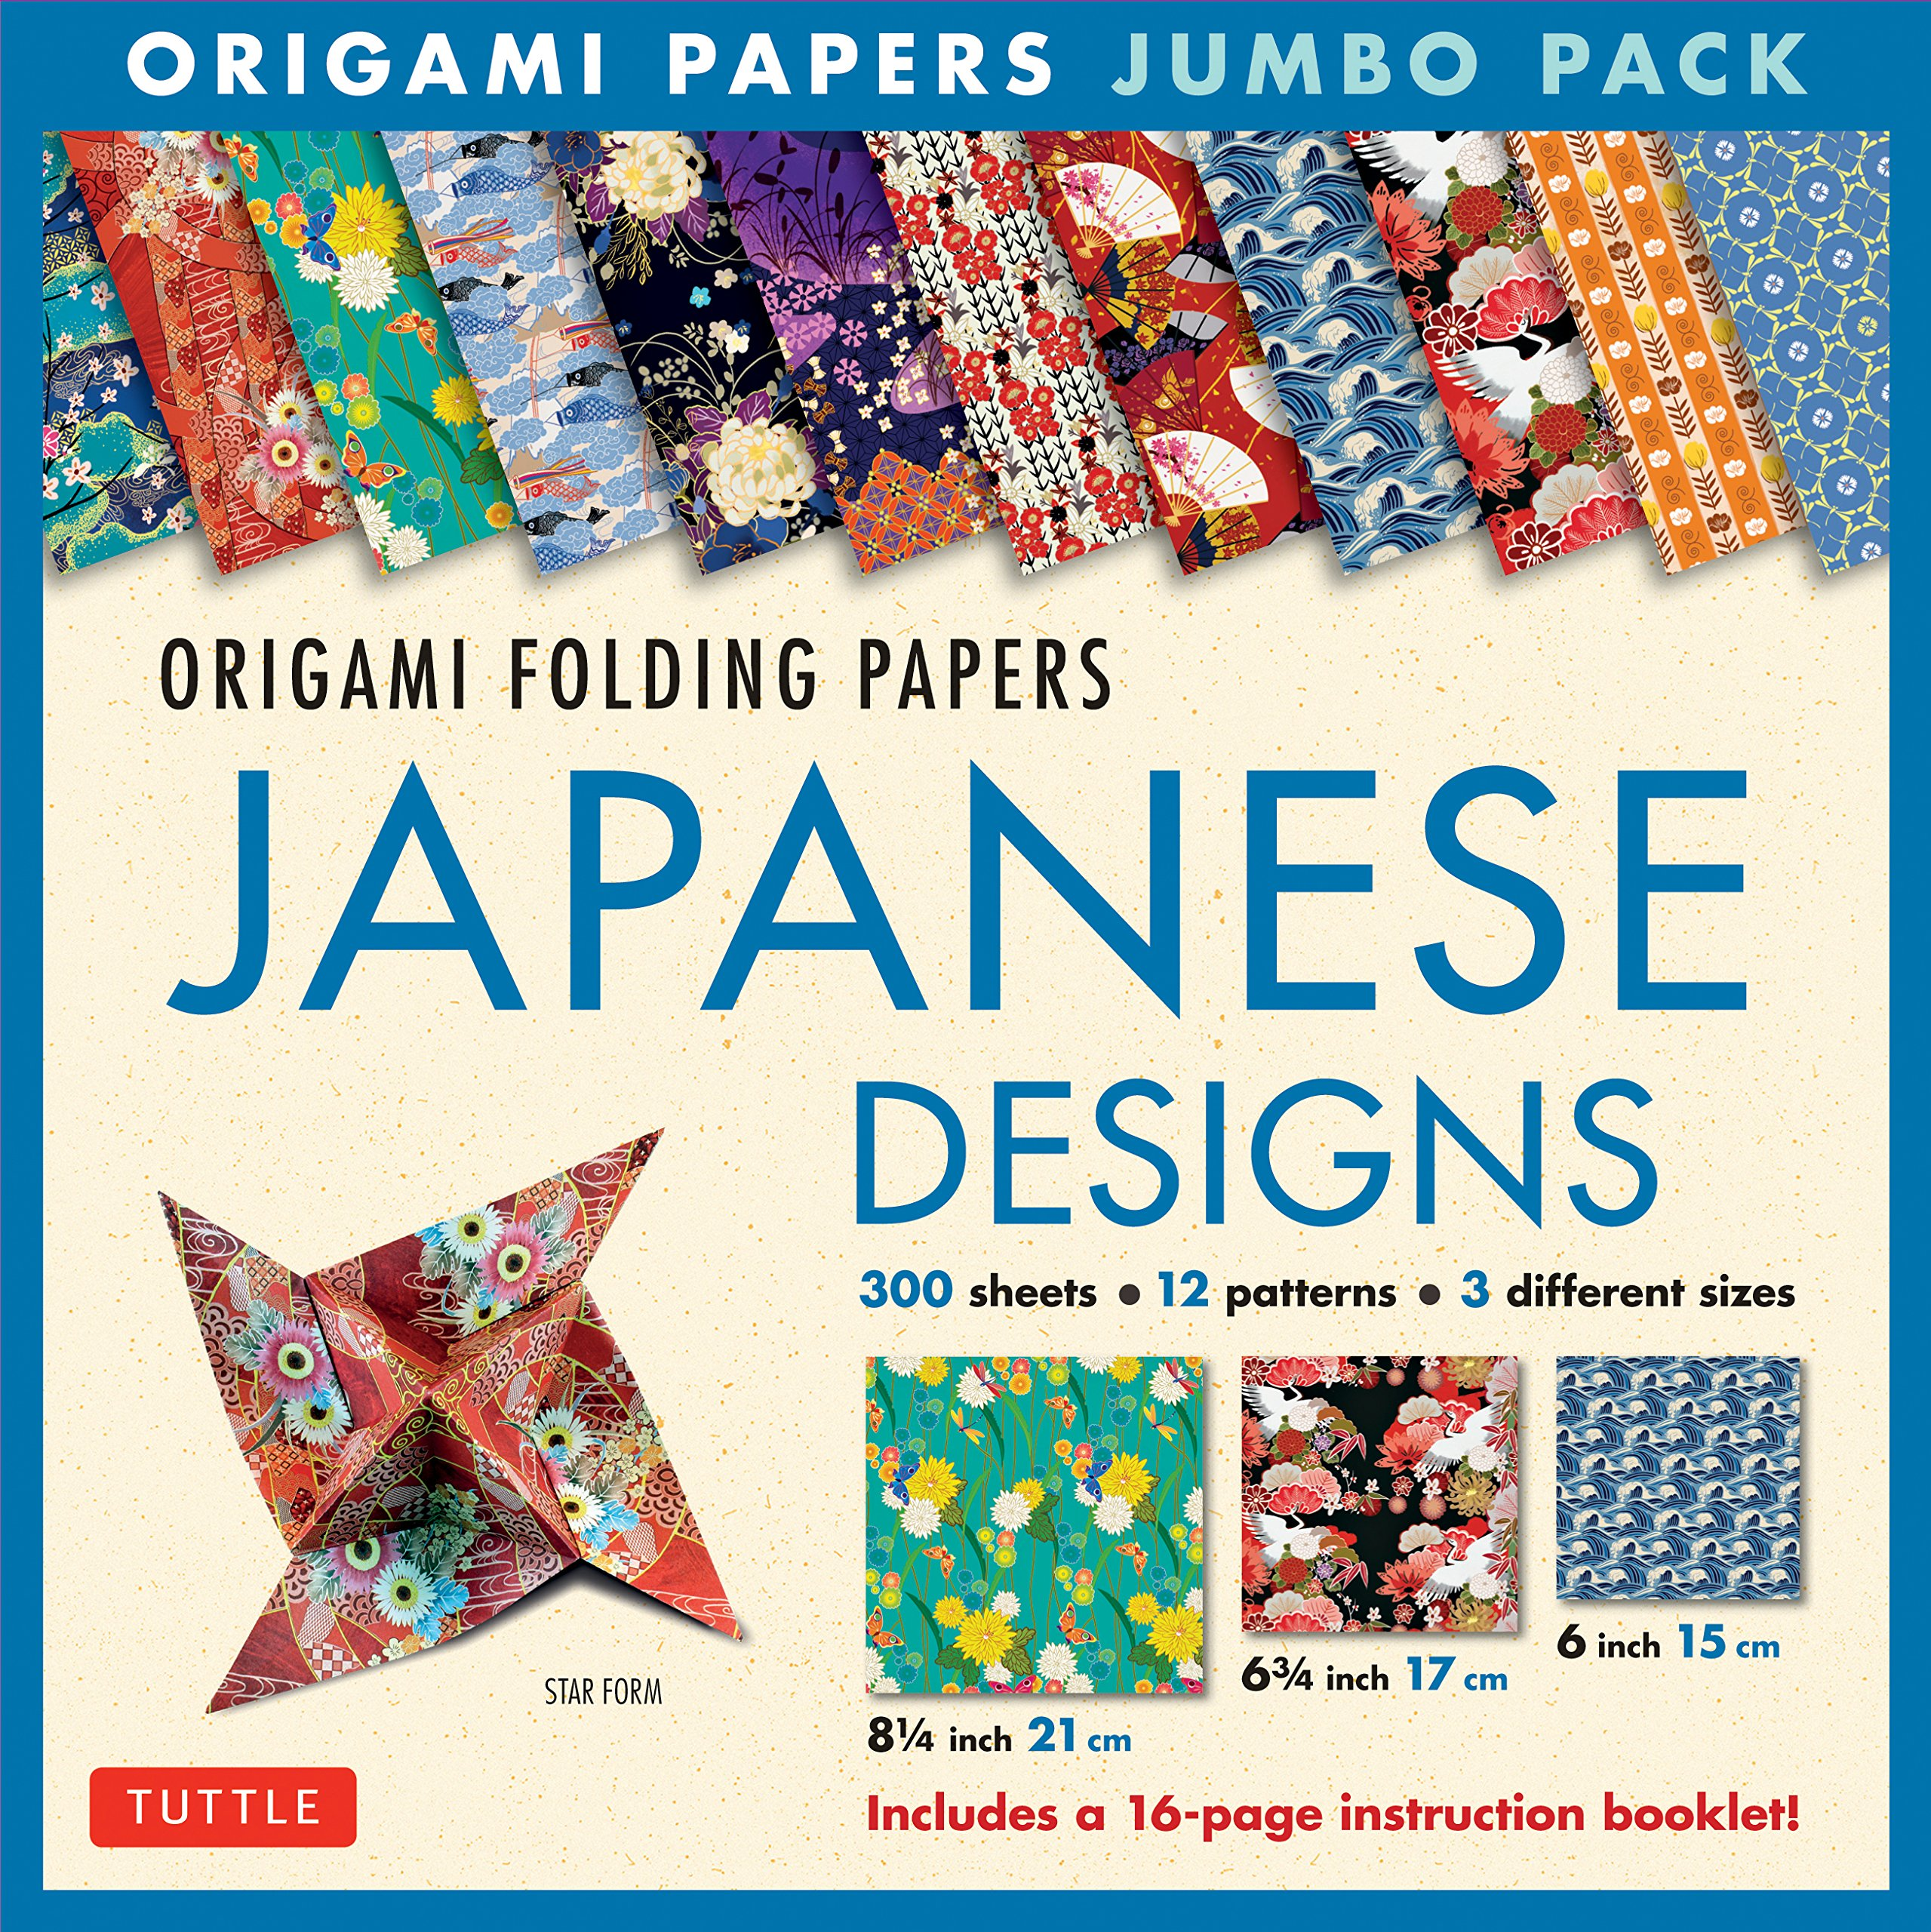 Origami Folding Papers Jumbo Pack: Japanese Designs: 300 High-Quality Origami Papers in 3 Sizes (6 inch; 6 3/4 inch and 8 1/4 inch) and a 16-page Instructional Origami Book Paperback – January 31, 2017 Tuttle Publishing 0804847290 ART / Prints NON-CLASSIF